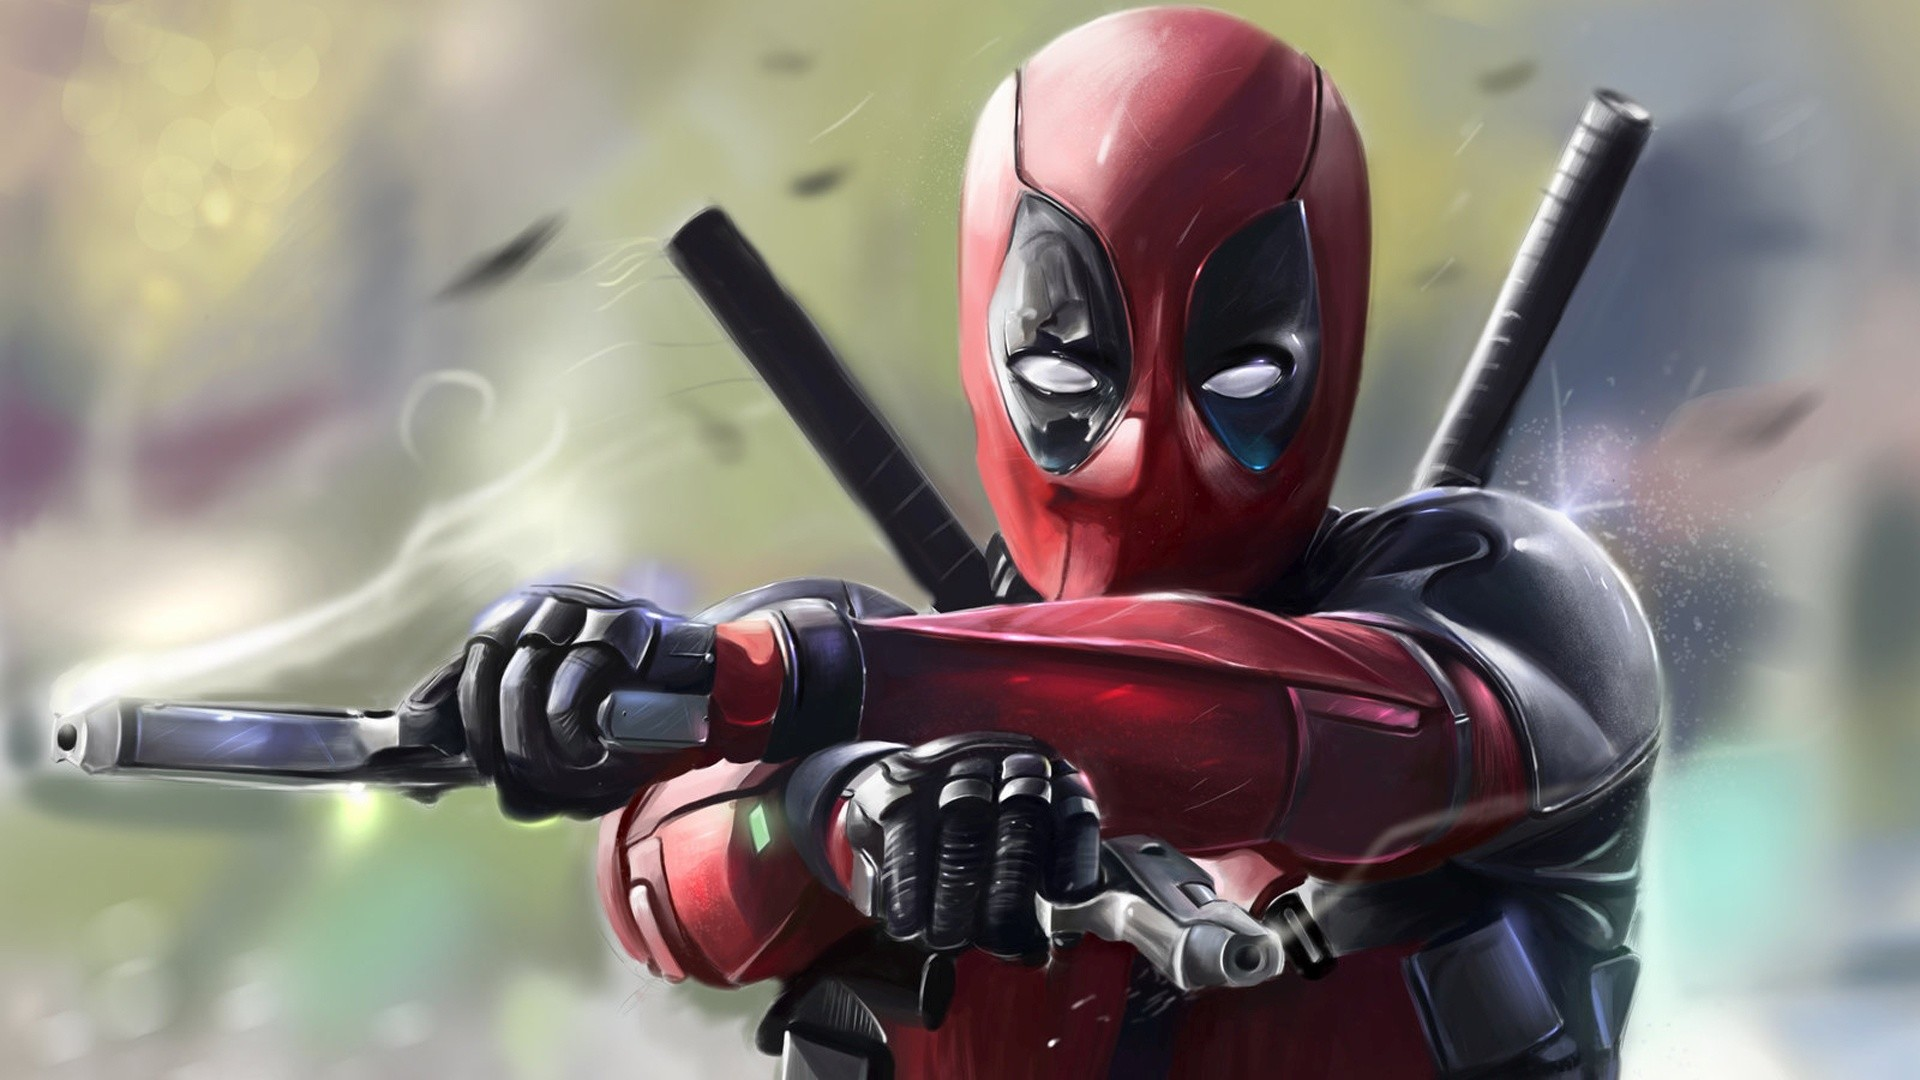 1920x1080 Deadpool Movie HD Wallpapers Free Download